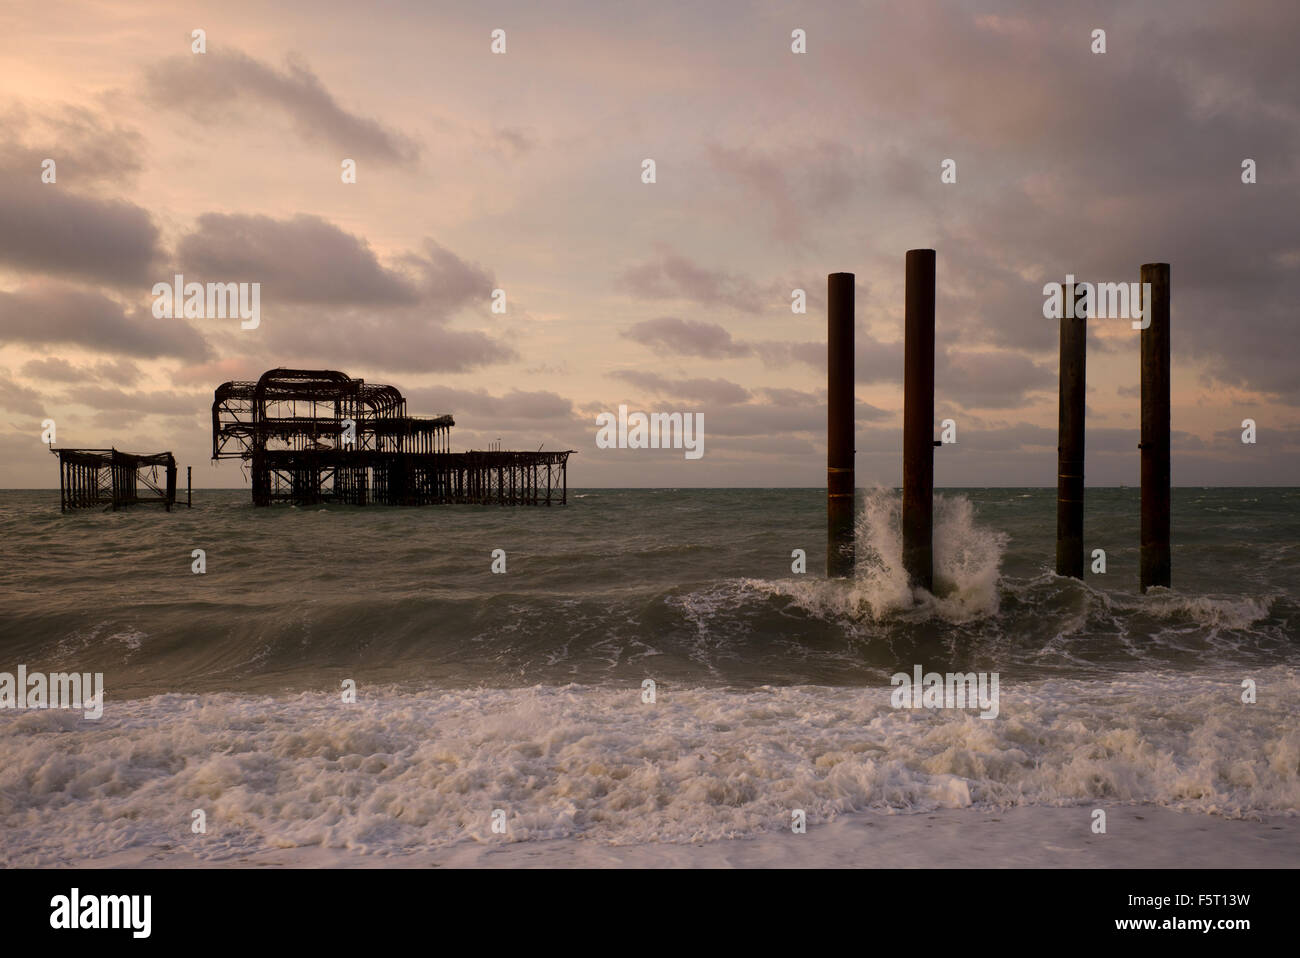 brighton's drelict West Pier, rough seas and stormy sky - Stock Image